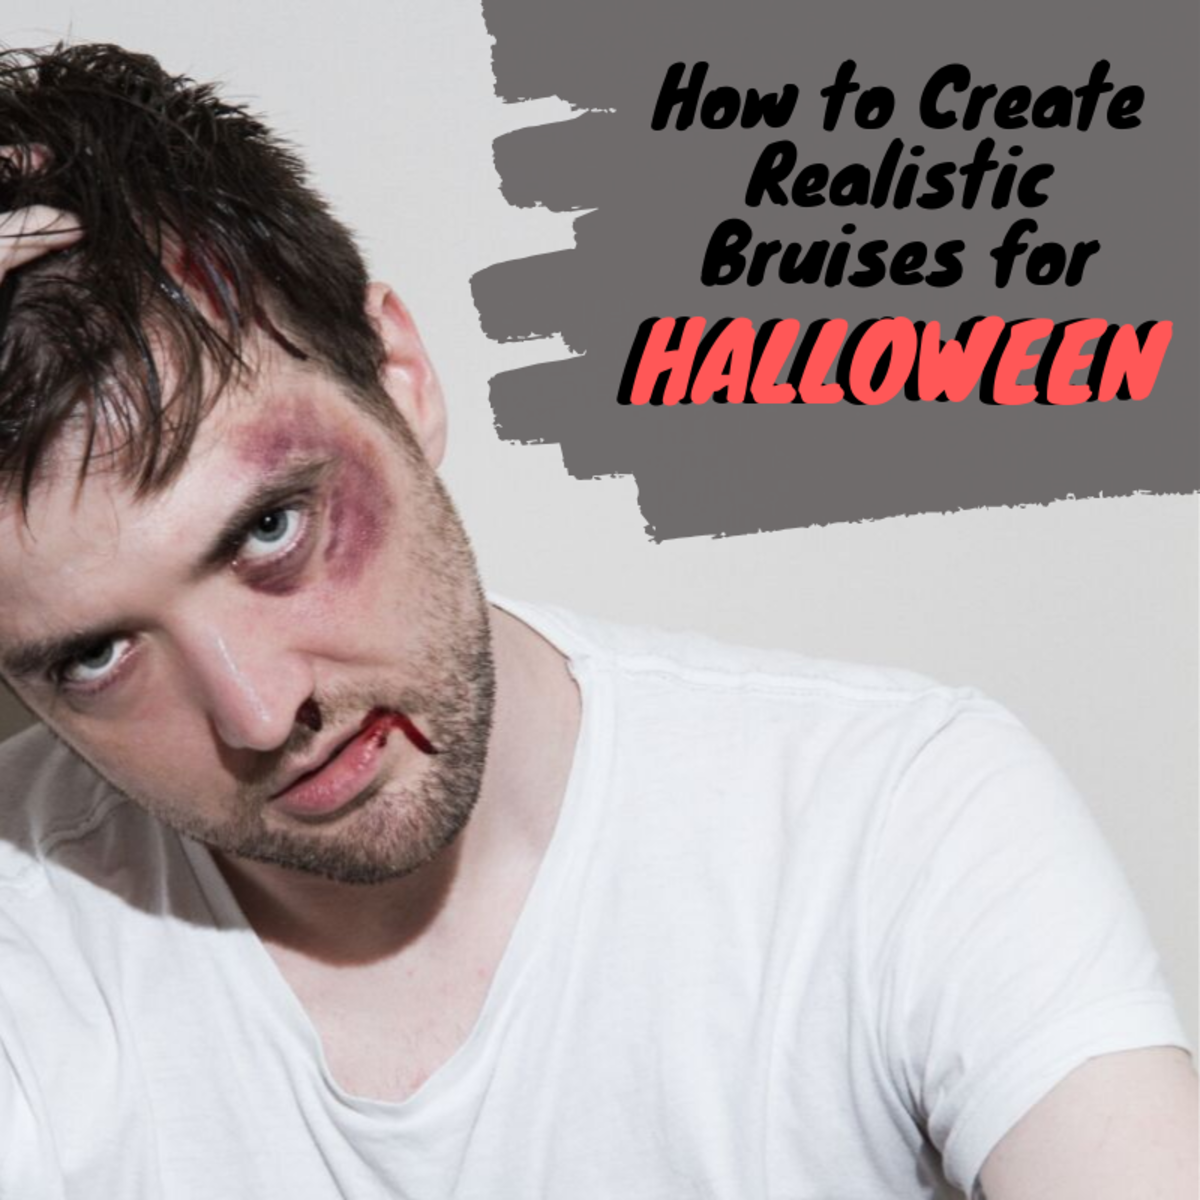 It's easier than you think to create creepily realistic bruise effects using nothing but non-toxic, washable markers.